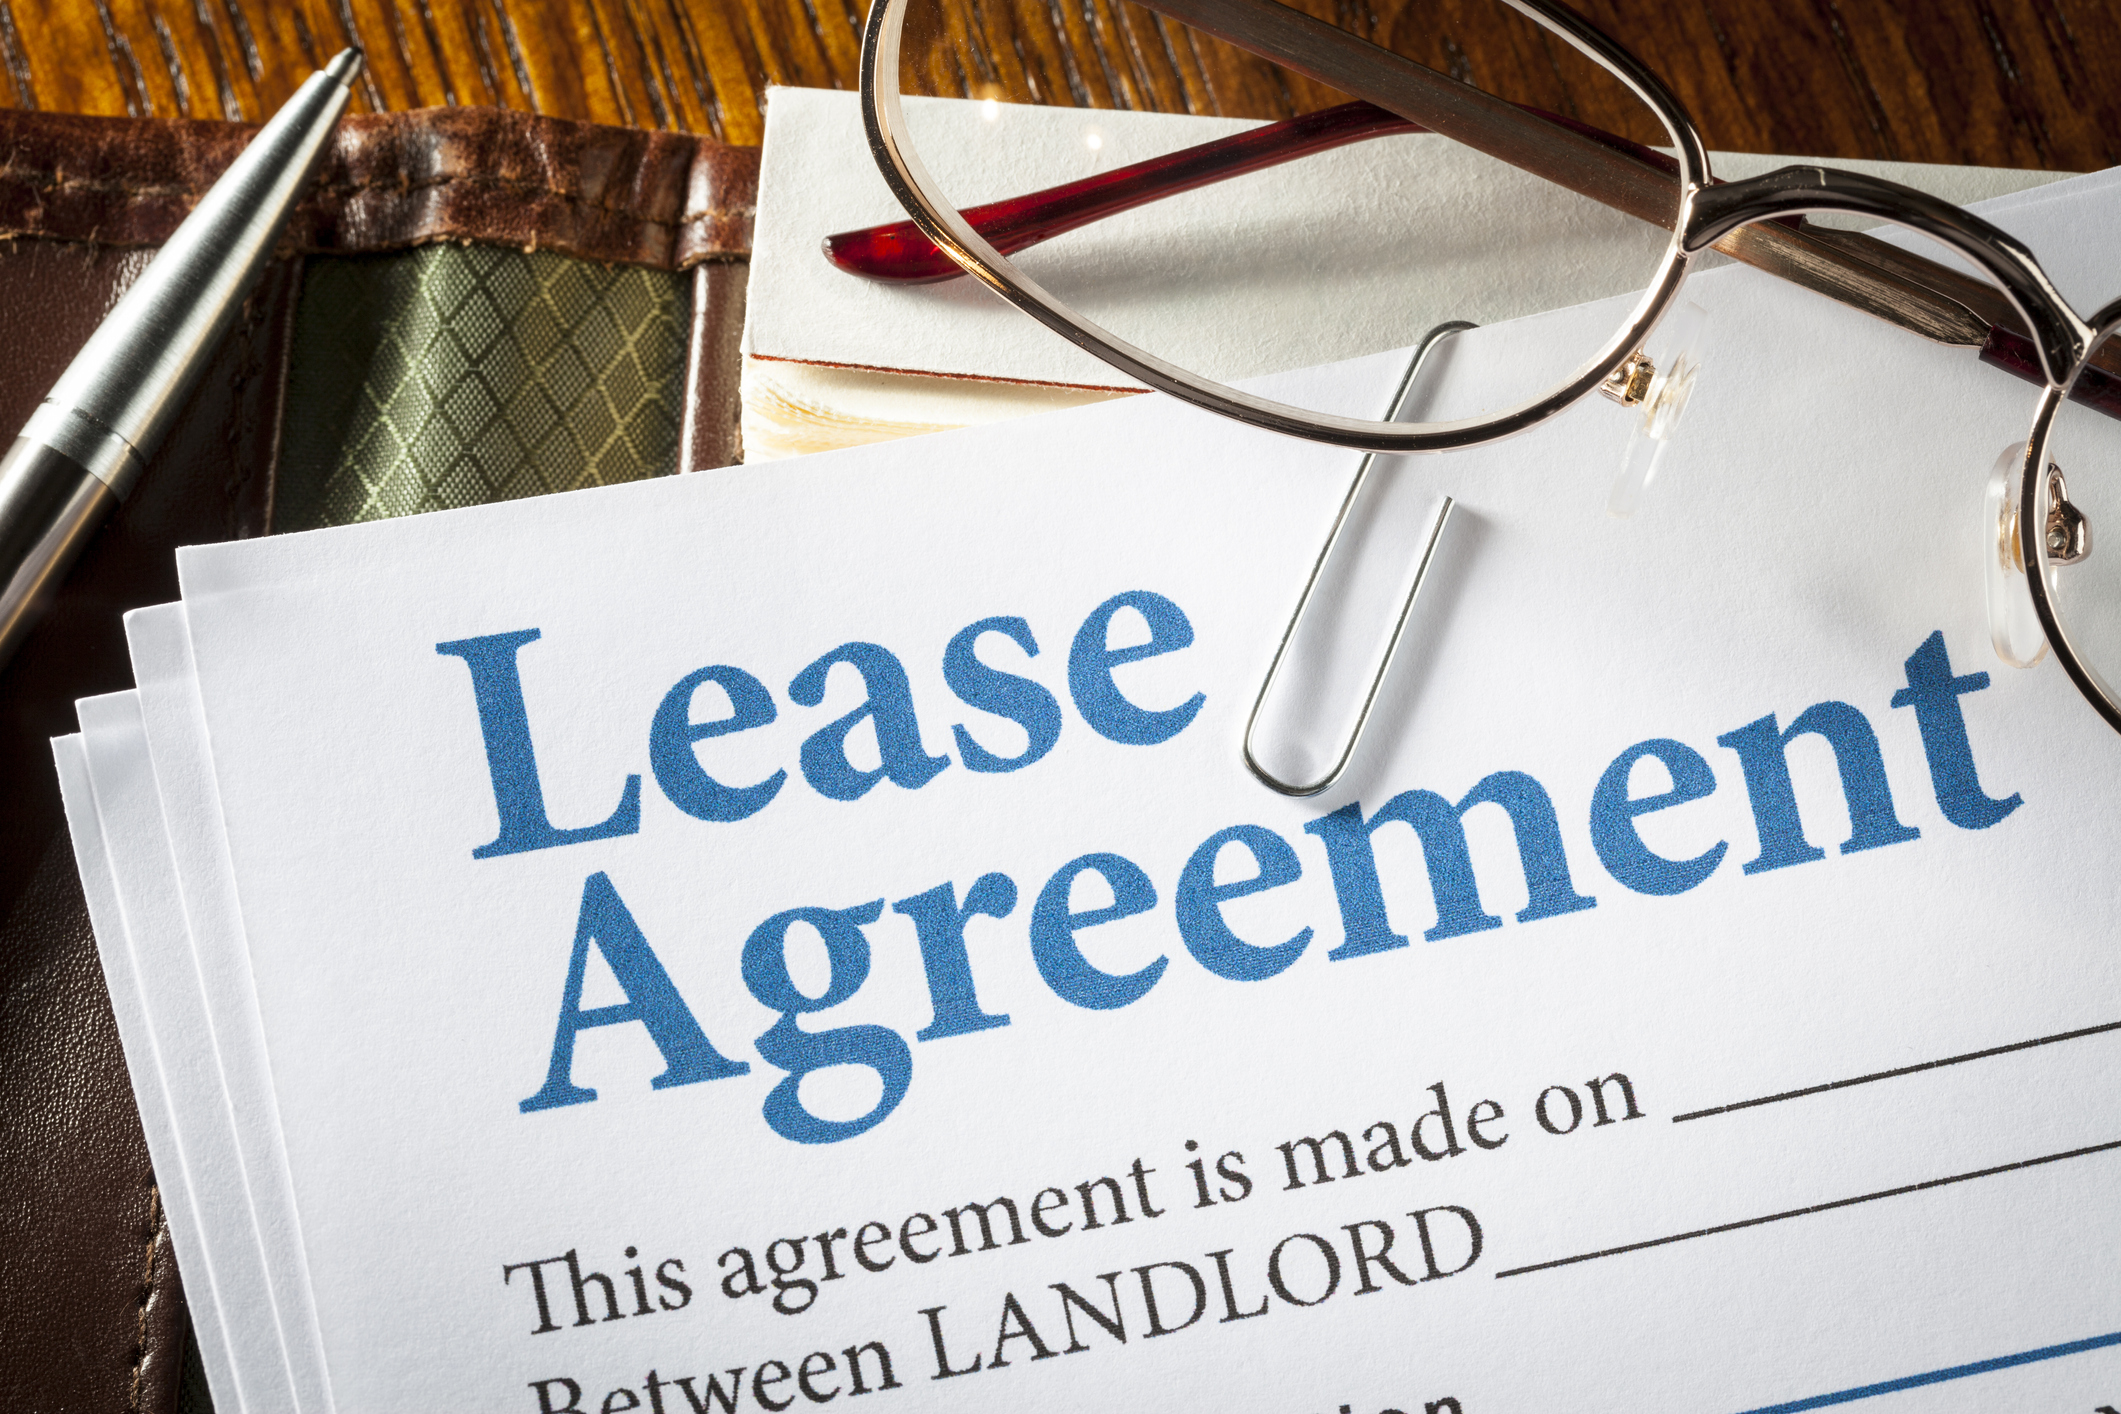 Lease agreement with pen and glasses on desk